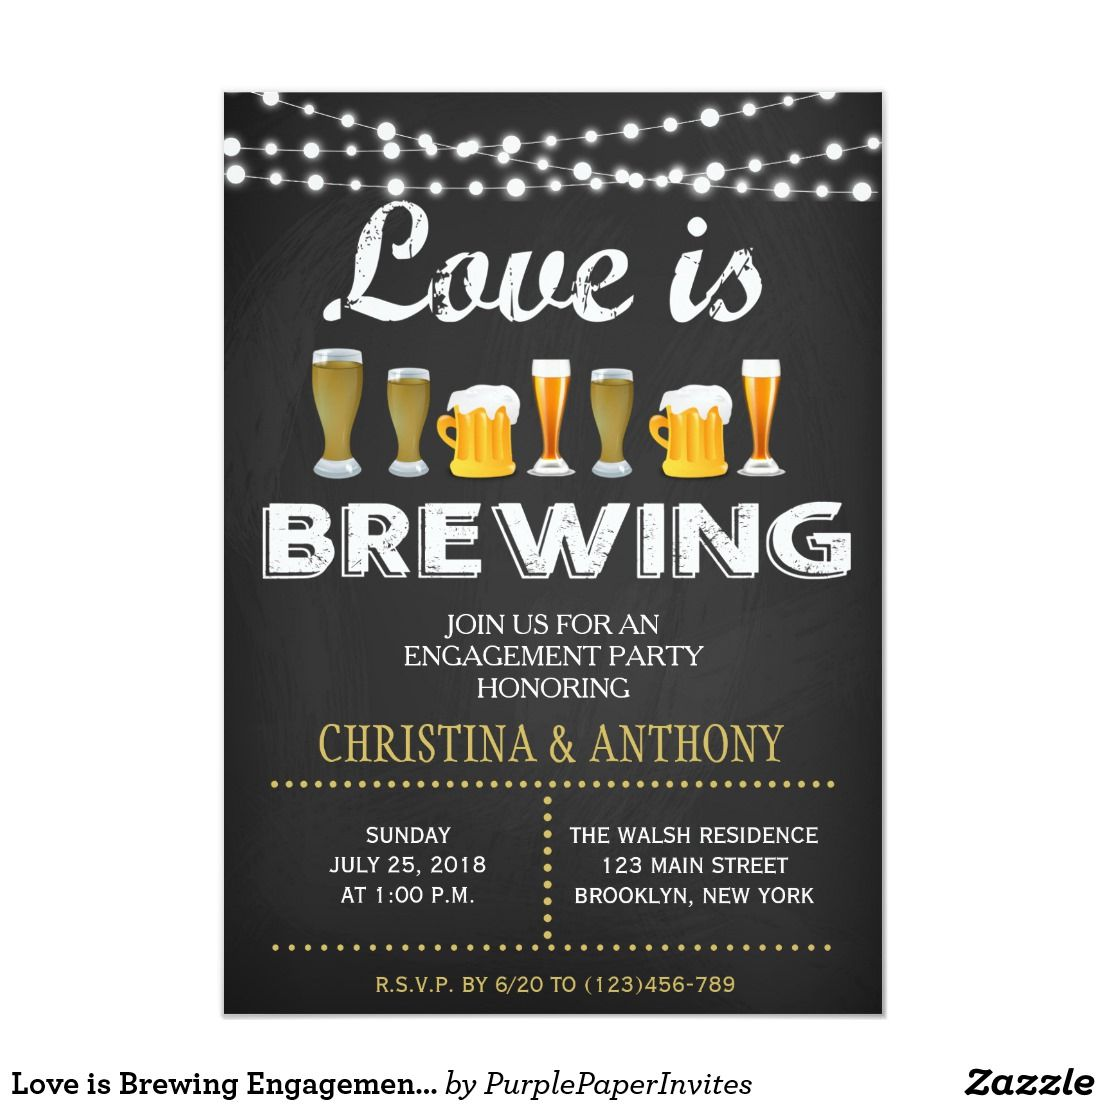 Love is Brewing Engagement Party Chalk Invitation | Zazzle.com